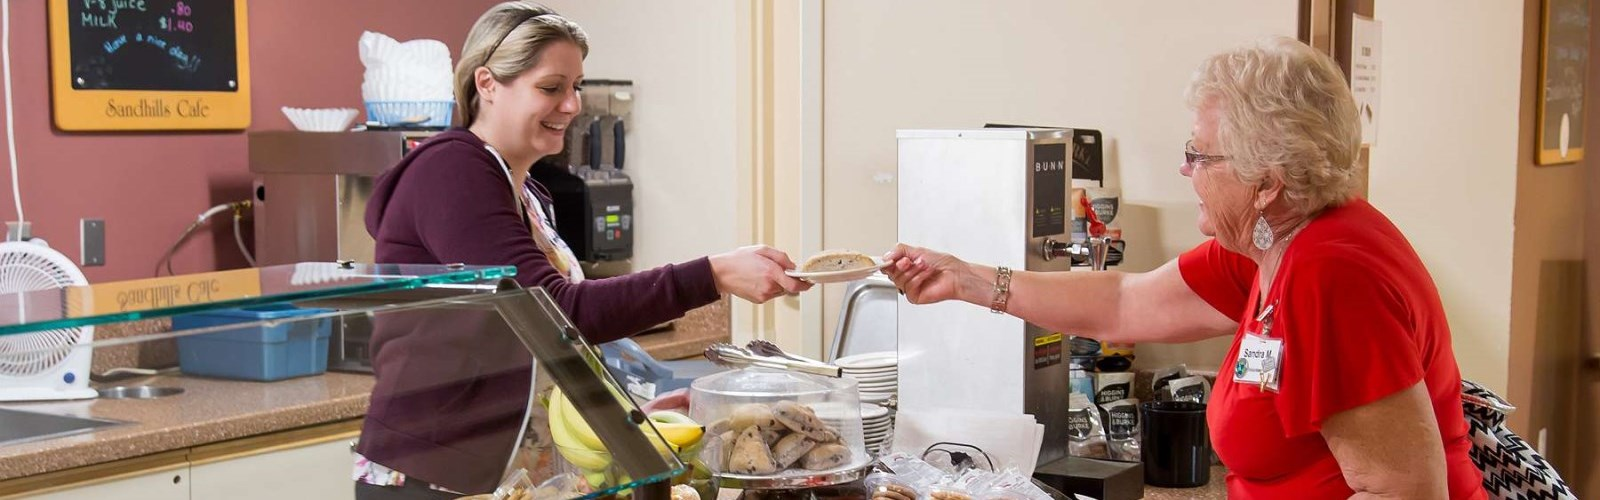 Volunteer serving food to client in the cafe on Sunnyside campus